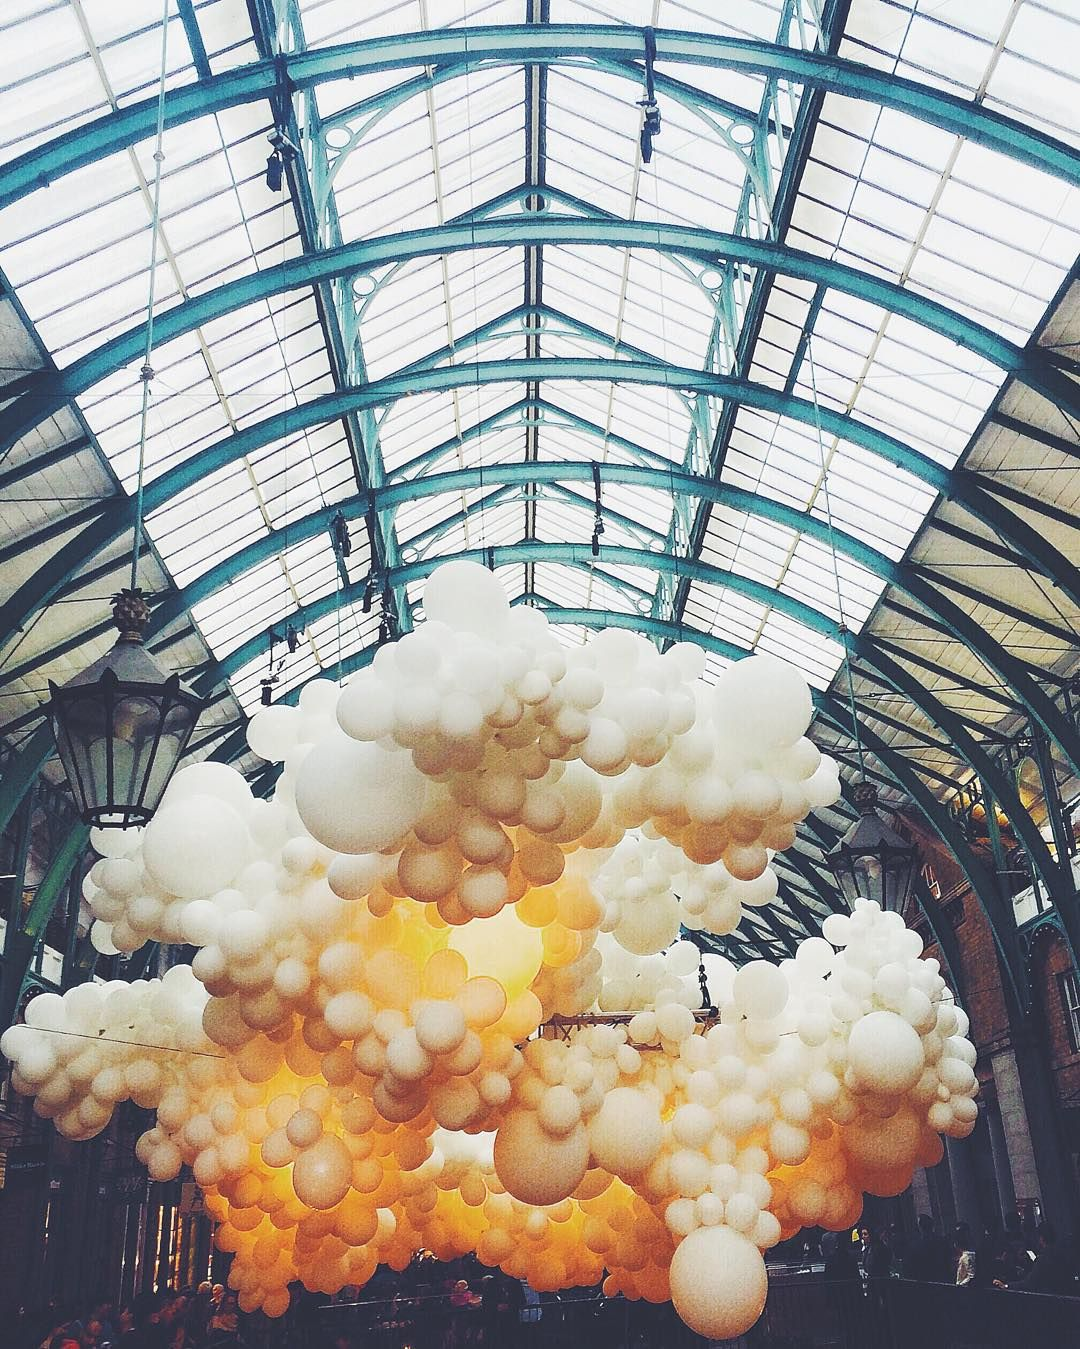 Bubble boom in Covent Garden #dcnlondon #dcnlifestyle Takeover by @gn0me